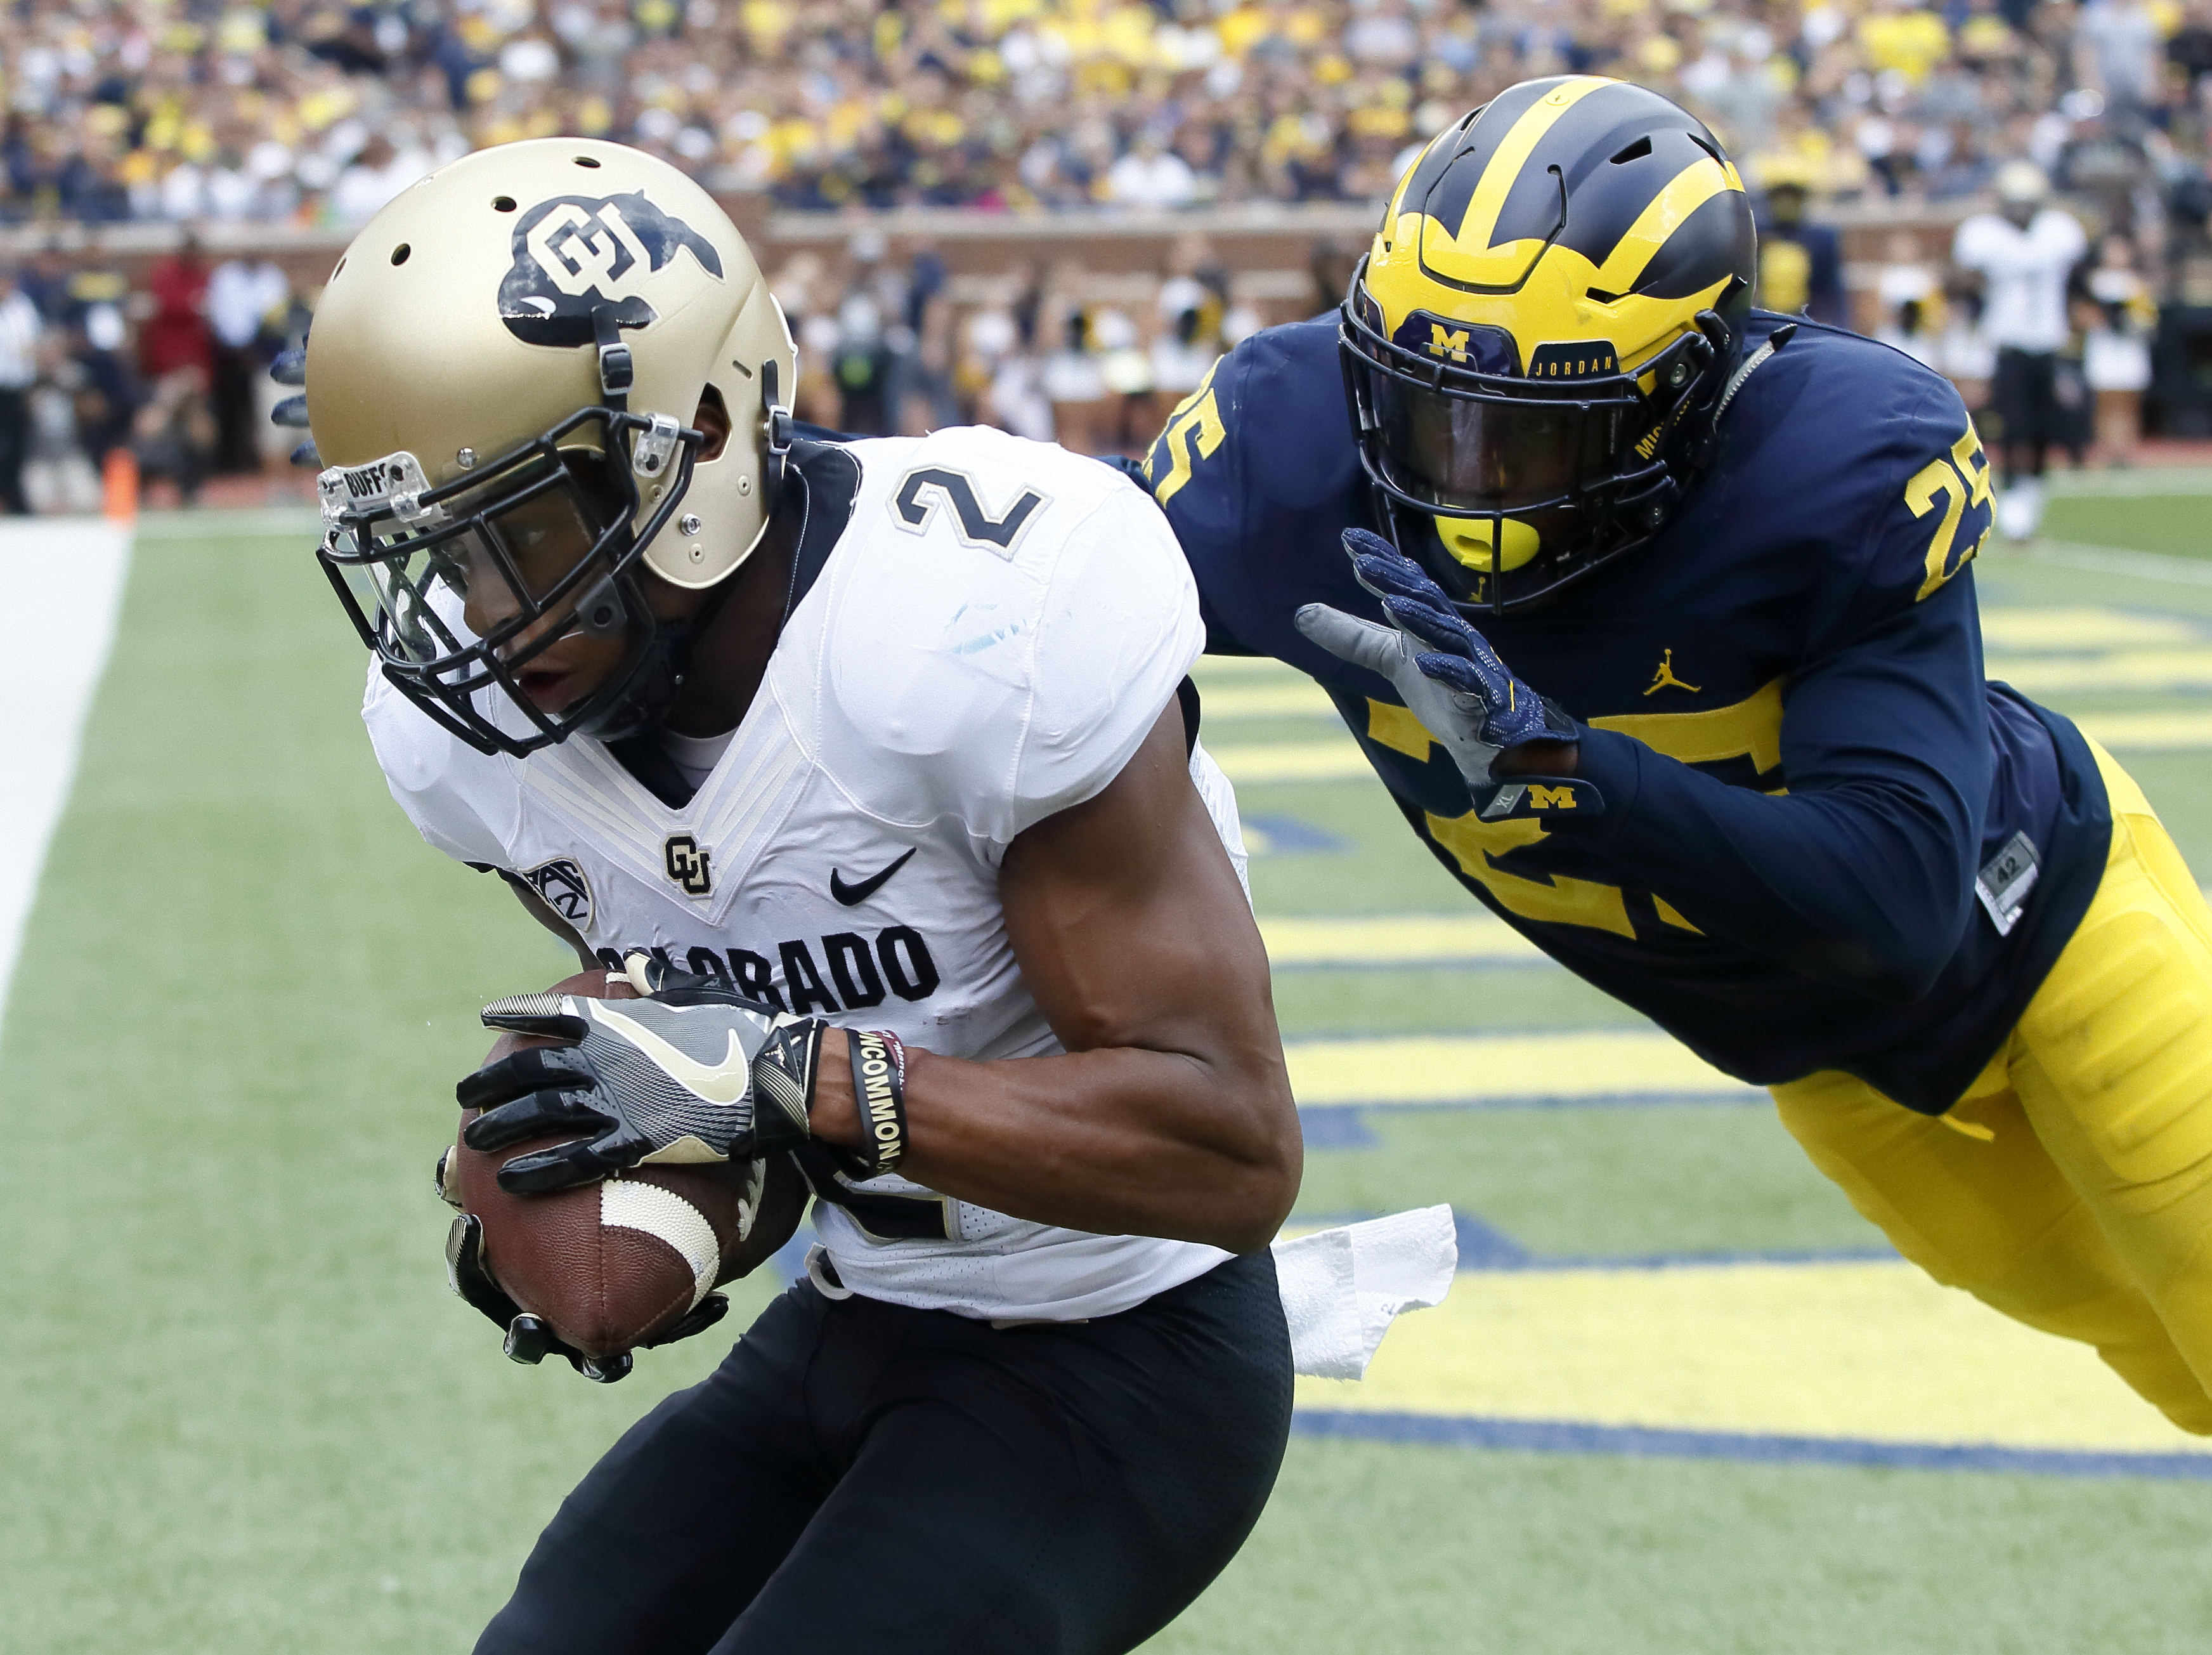 Wide receiver Devin Ross of the Colorado Buffaloes catches a touchdown pass in front of safety Dymonte Thomas #25 of the Michigan Wolverines during the first quarter at Michigan Stadium on September 17, 2016 in Ann Arbor, Michigan. (Photo by Duane Burleson/Getty Images)